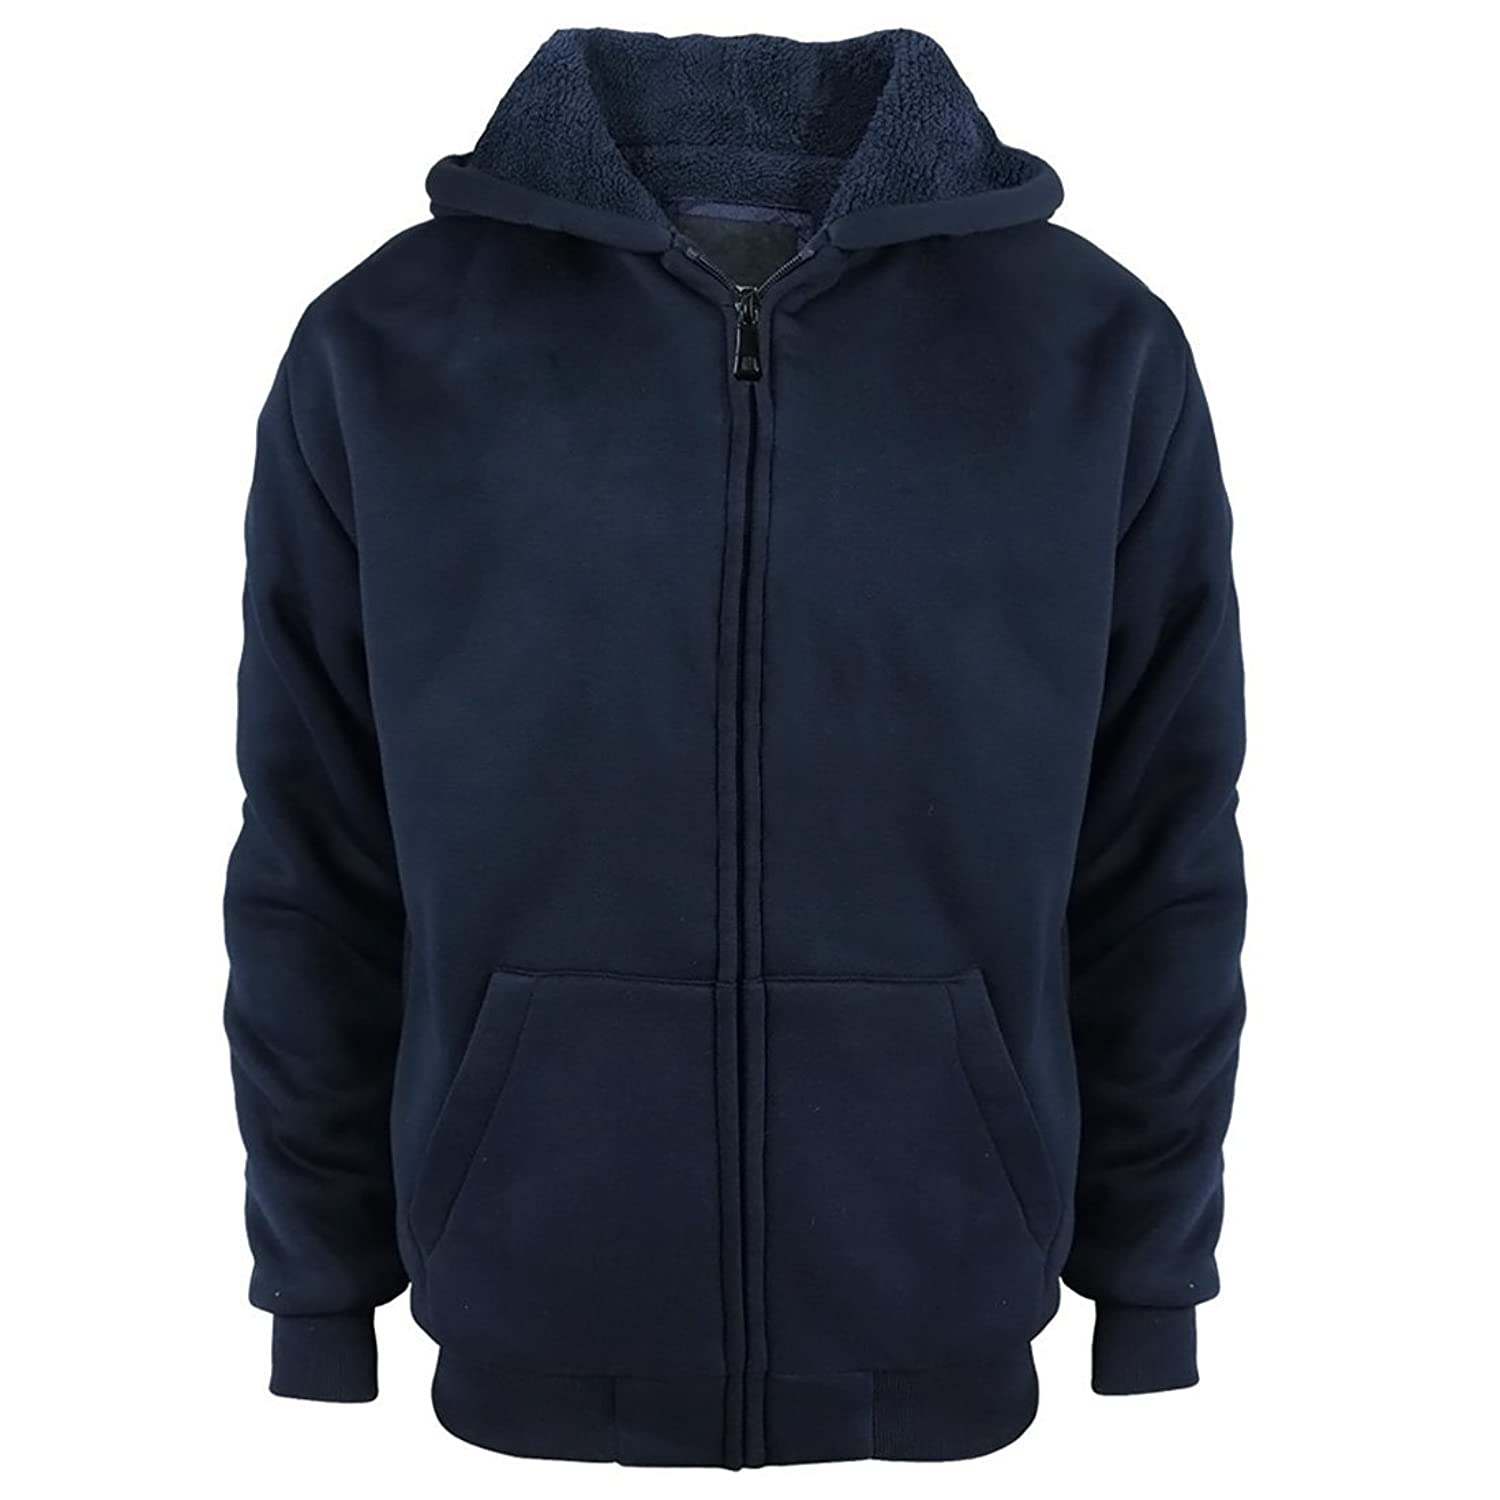 3fdcaa695 Material of Shell: 55% Cotton+45% Polyester Boys Hoodie; Material of  Lining: 100% Polyester Fleece Hoodies for Boys Style Character: Solid Color  Boys ...